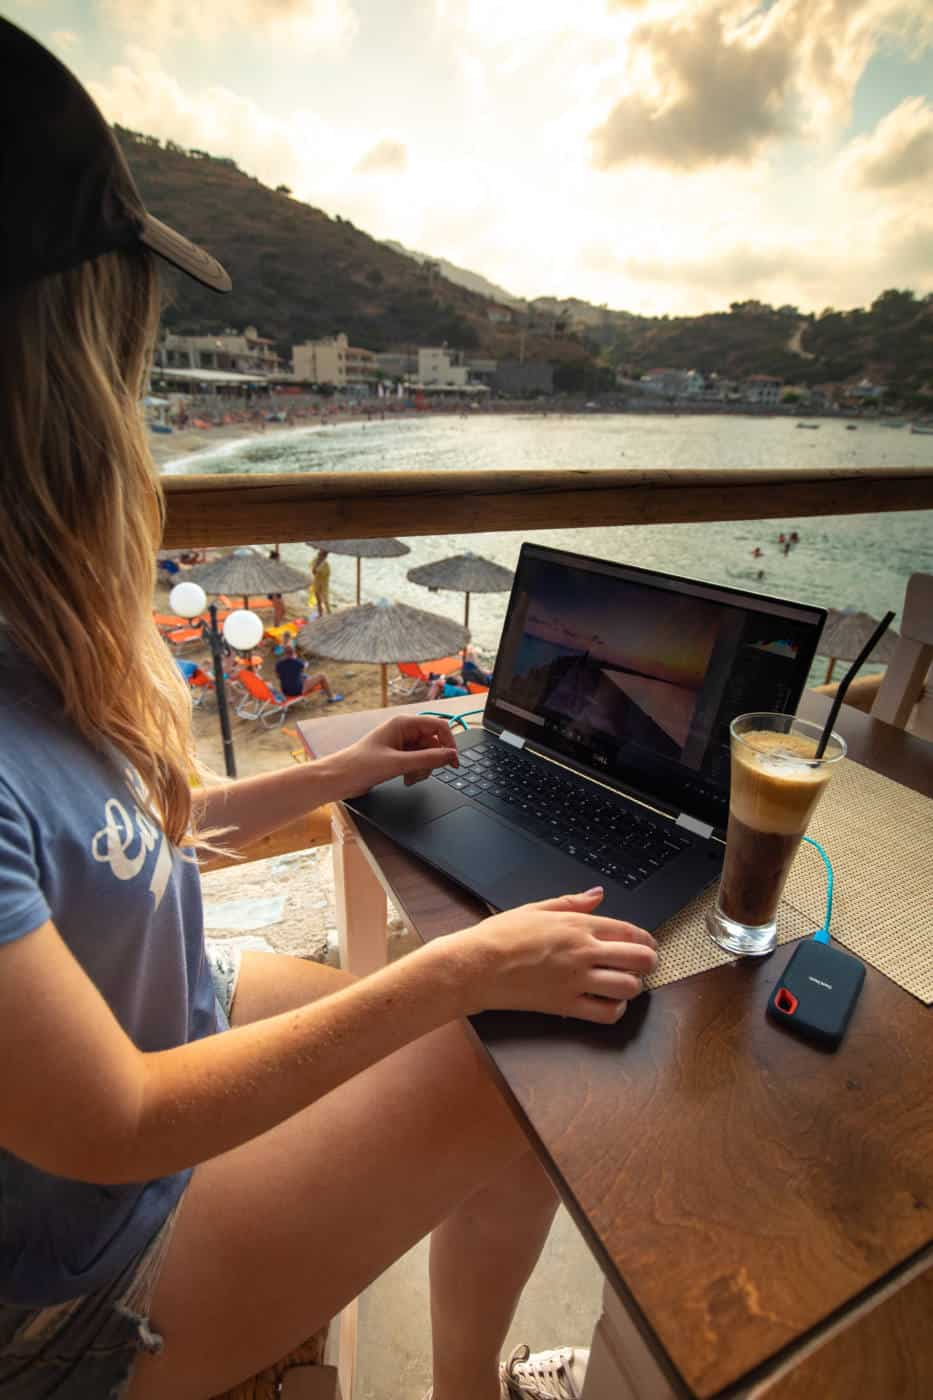 Working on the beach as a digital nomad in Greece